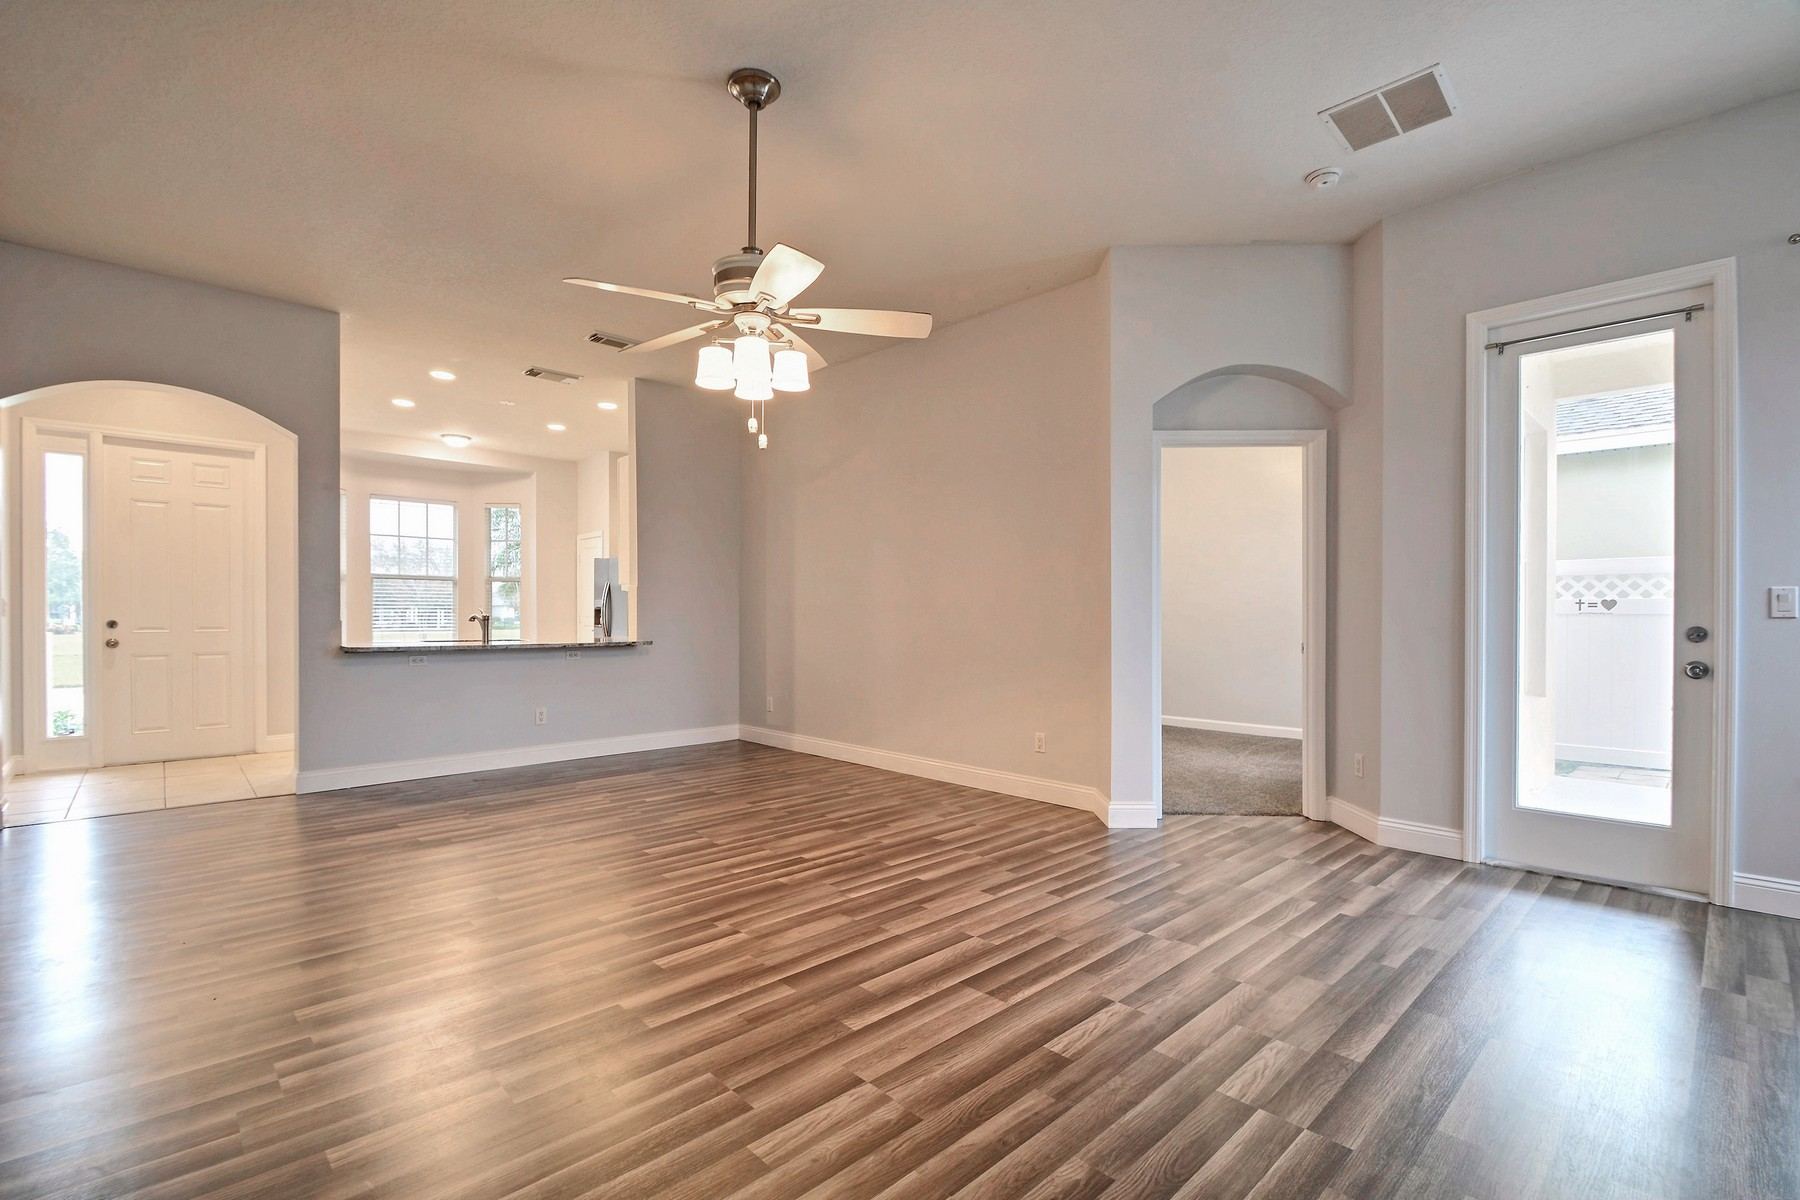 Single Family Home for Sale at Beautifully Renovated Home 10667 SW West Park Avenue Port St. Lucie, Florida 34987 United States